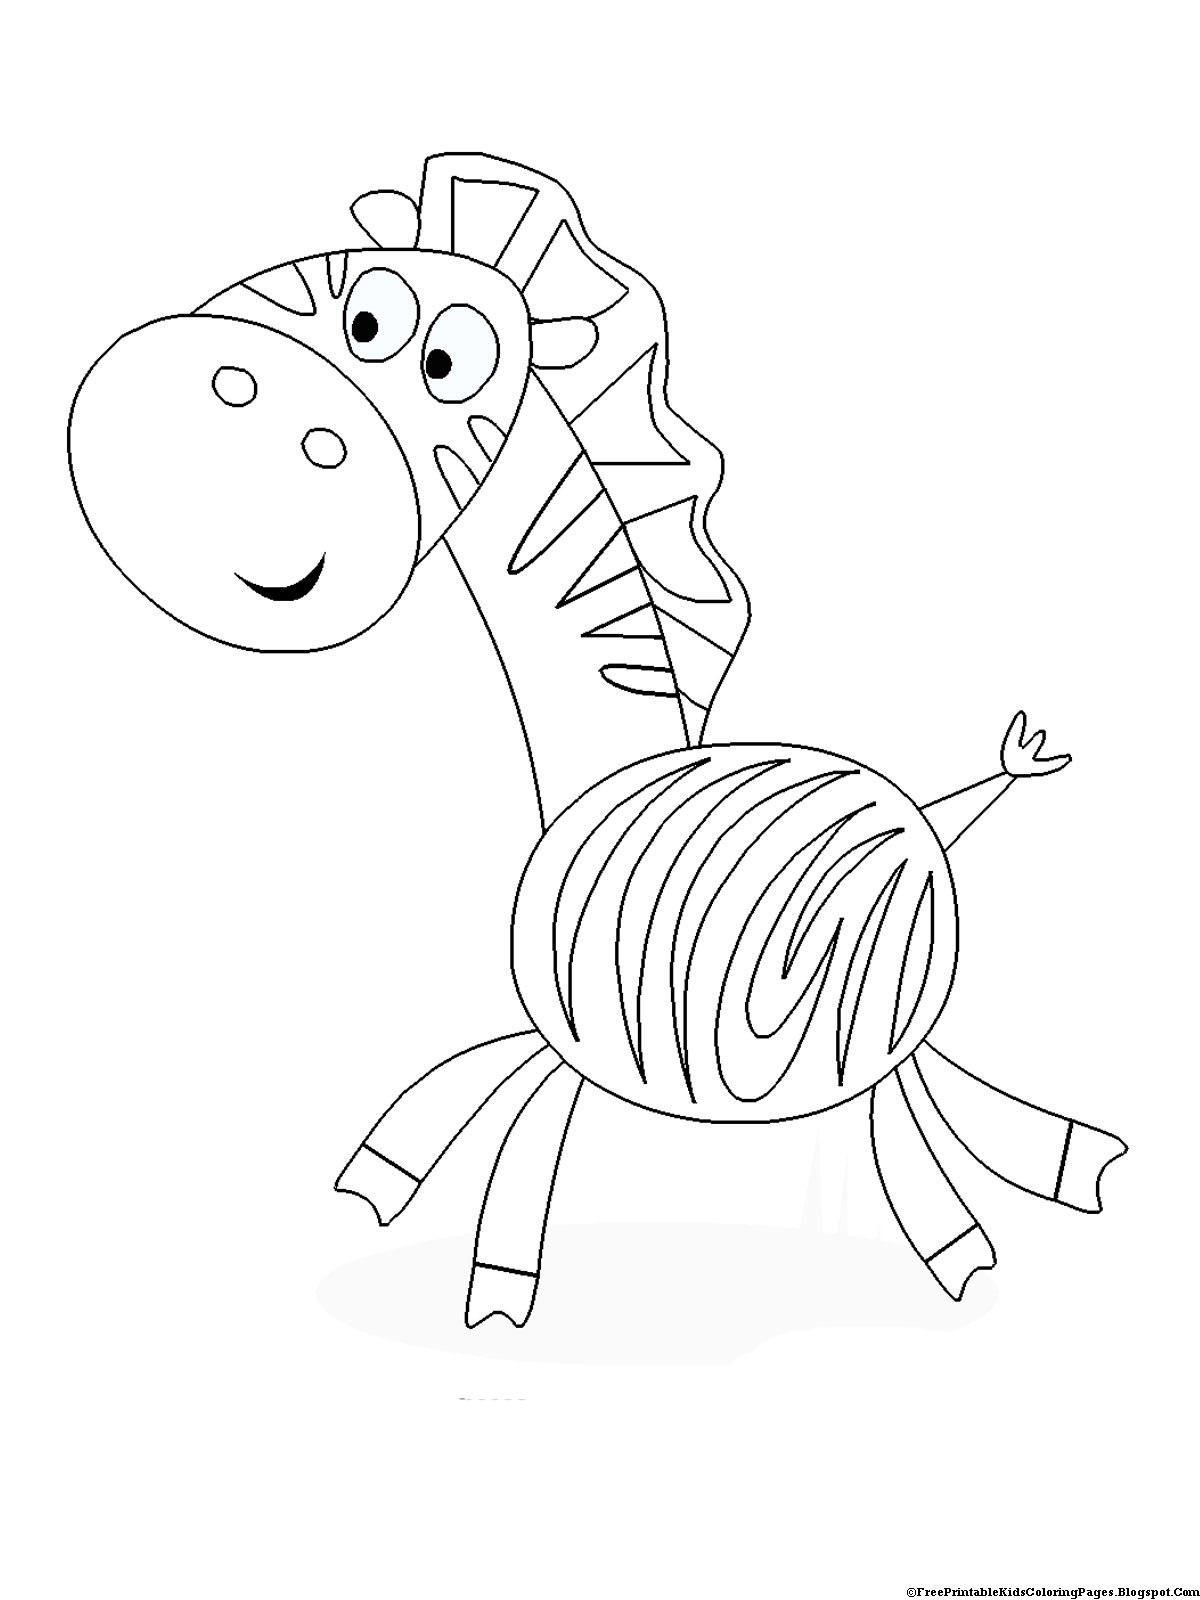 zebra print coloring pages strong zebra coloring page download print online coloring zebra print pages